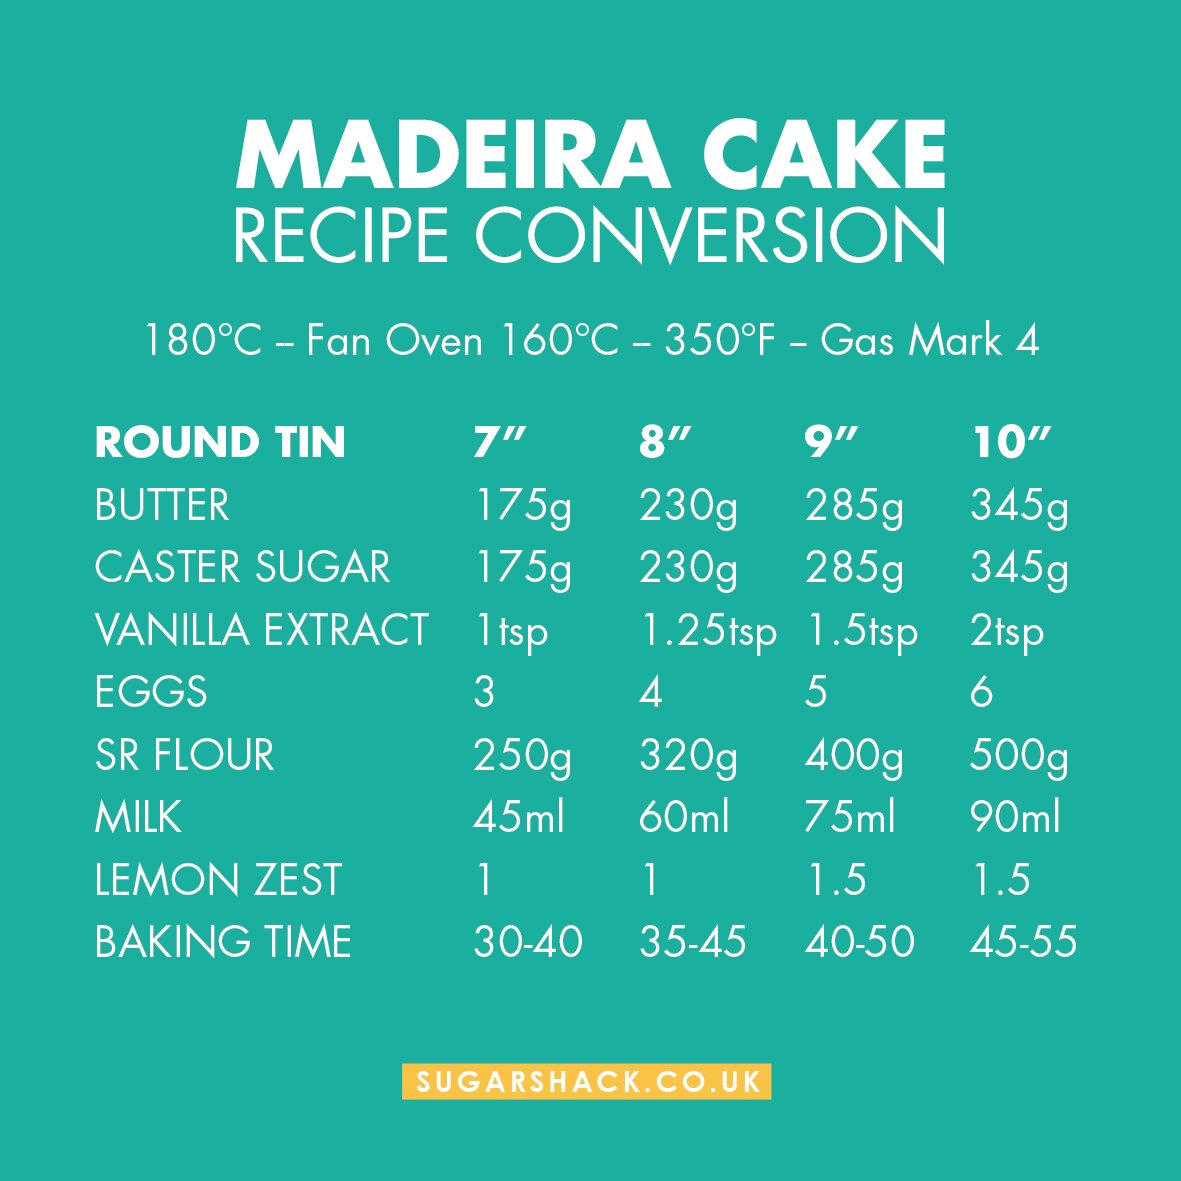 Madeira conversion chart images free any chart examples sugarshack on twitter madeira cake recipe conversion chart sugarshack on twitter madeira cake recipe conversion chart nvjuhfo Images